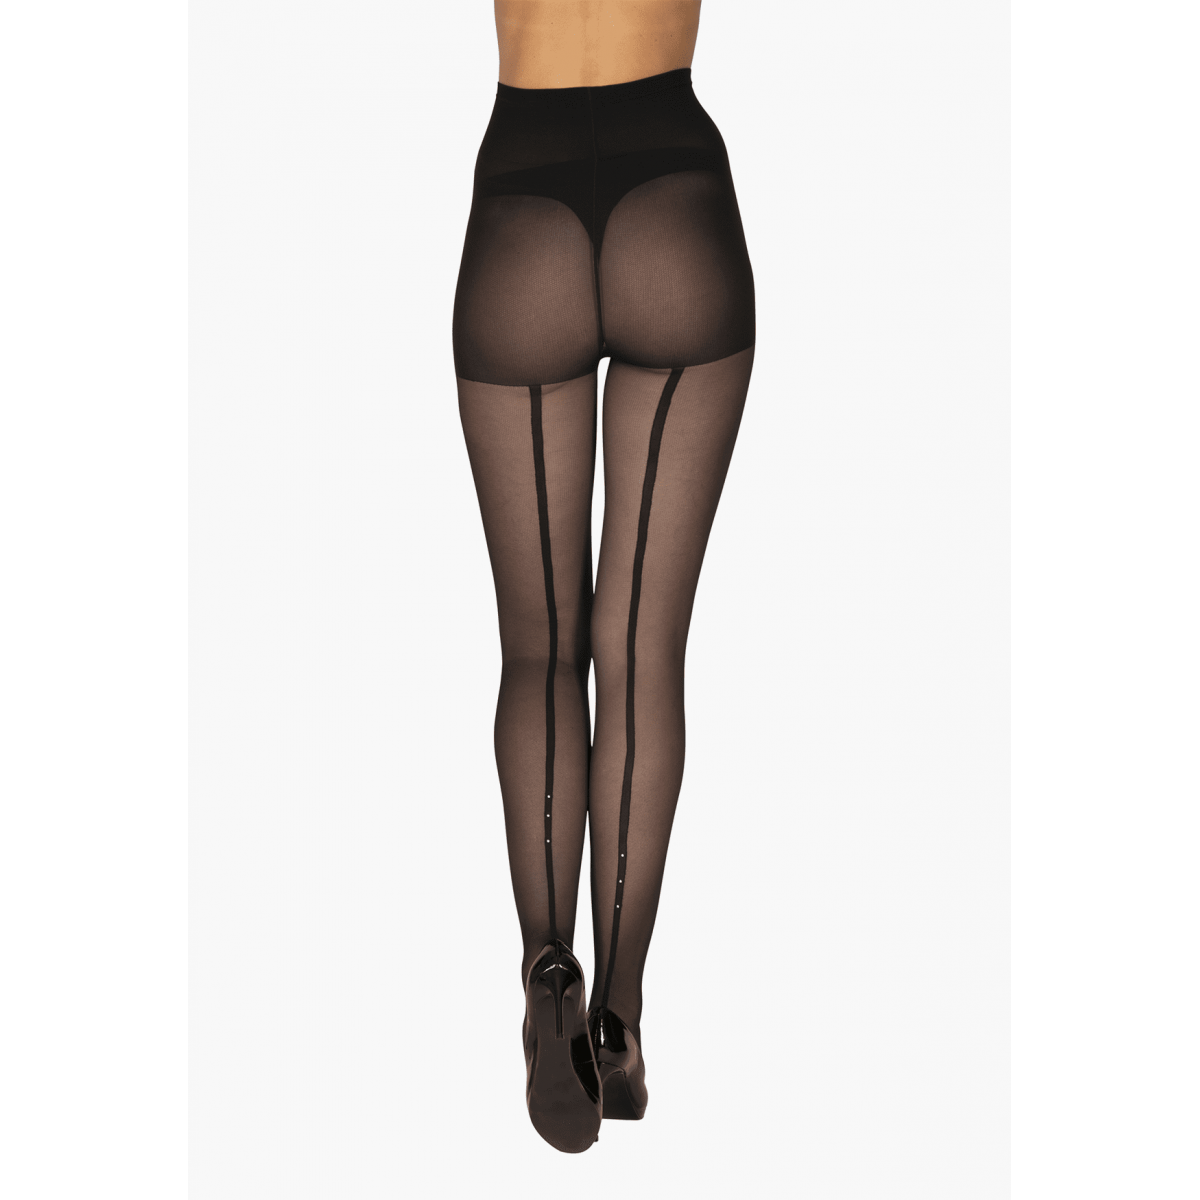 Collant Fantaisie Transparent 20D avec Baguette Strass Magic Nights